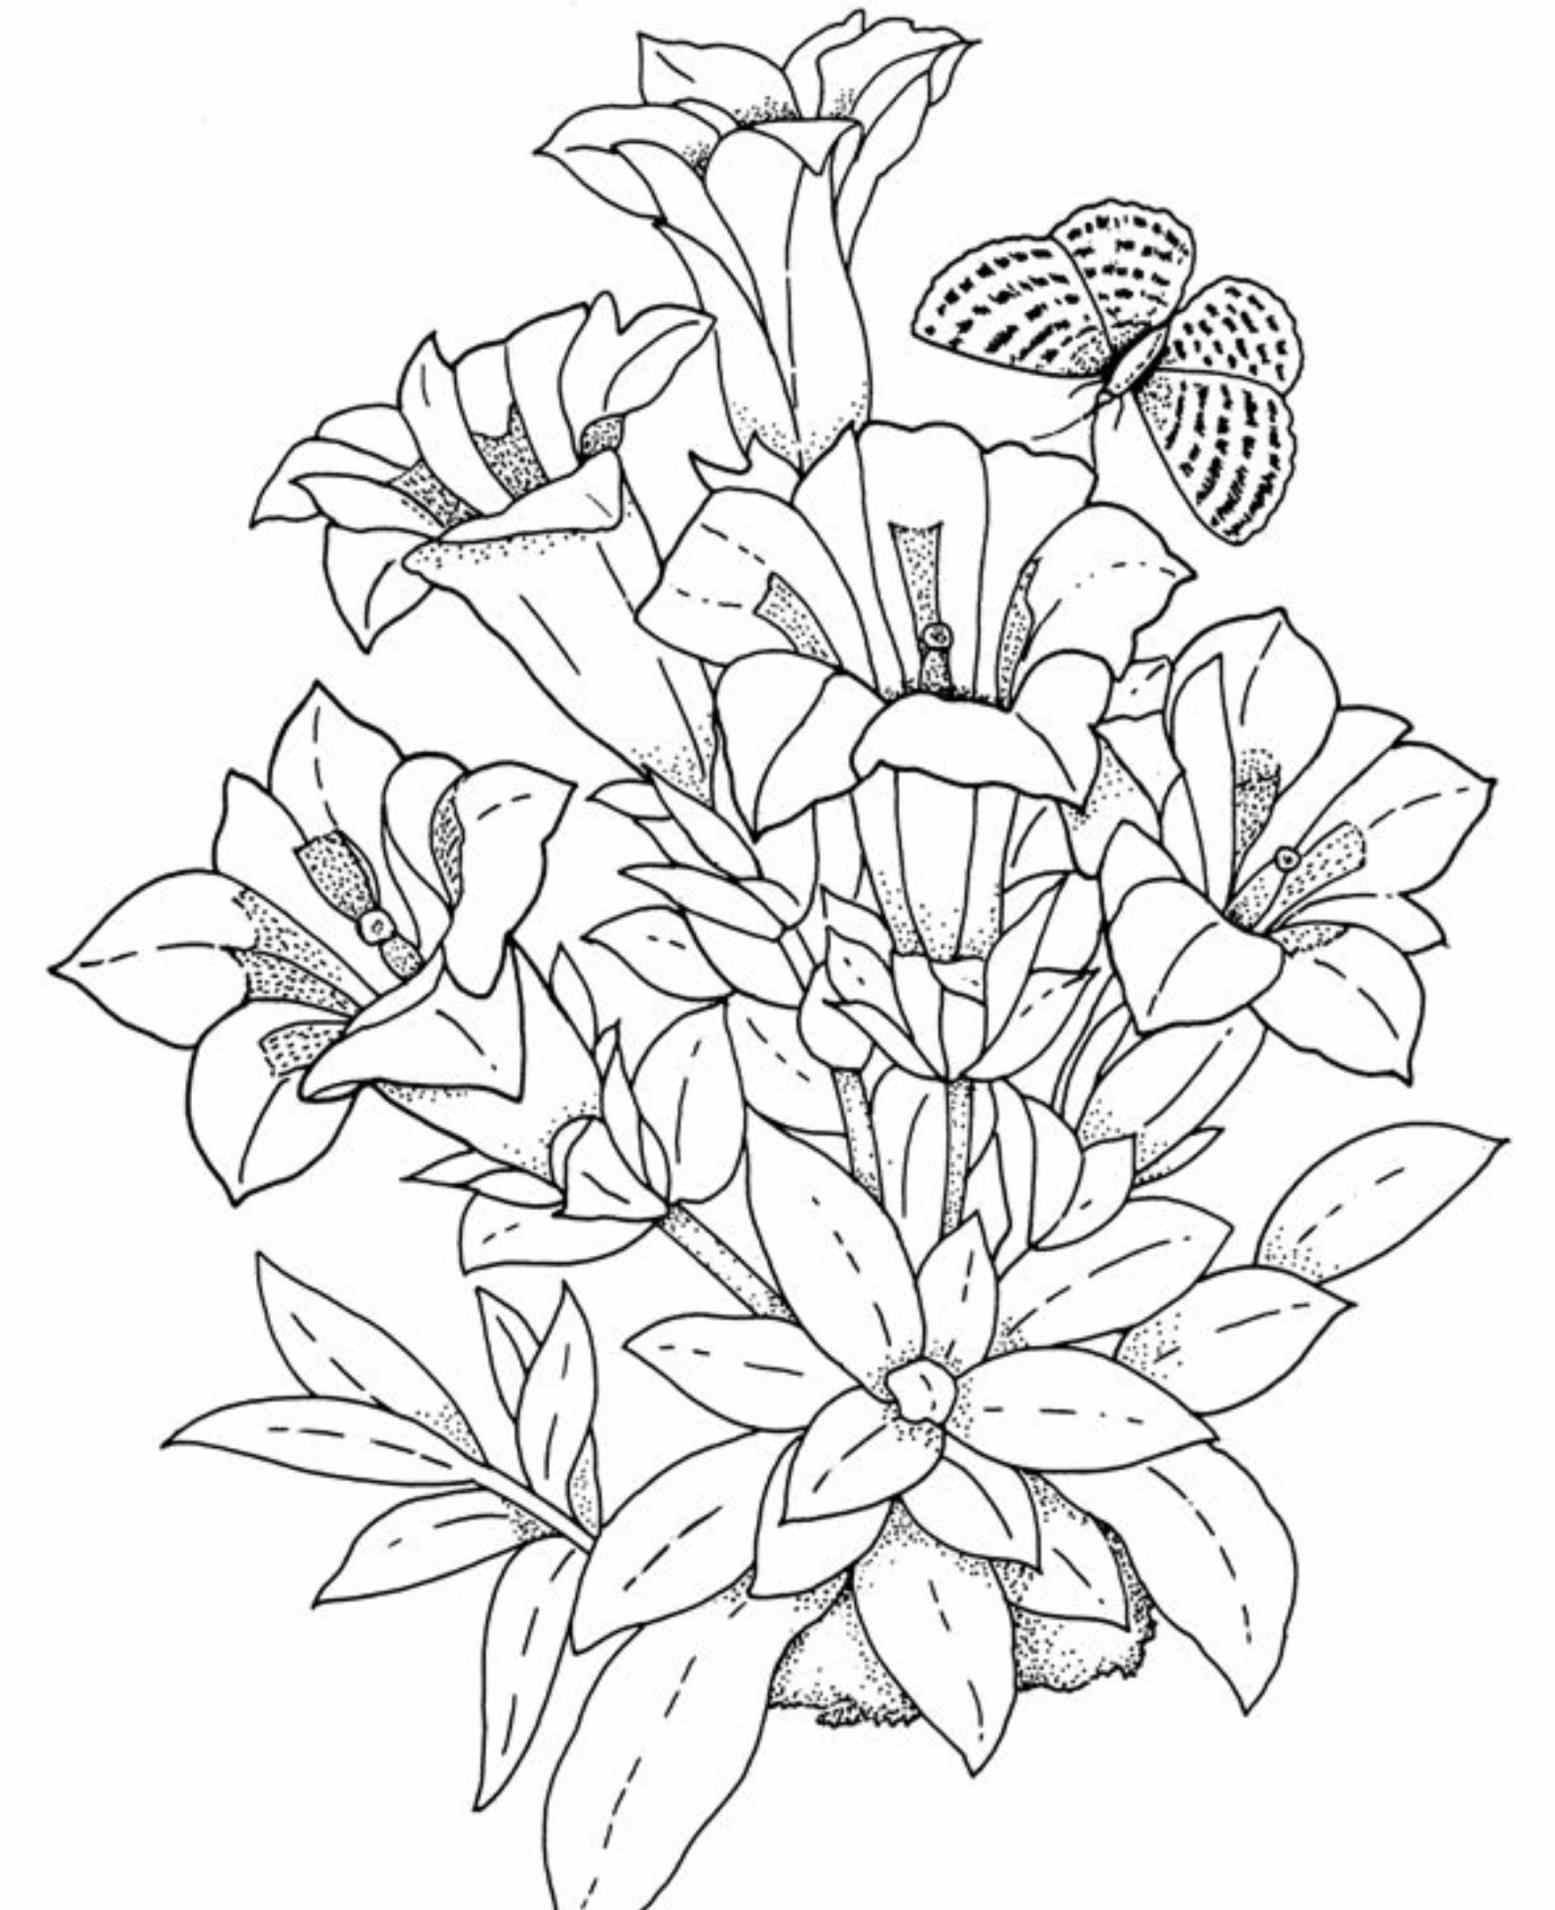 1555x1910 Of Flowers Drawing Magnolia Sketch Lineart Stock Vector For Kids